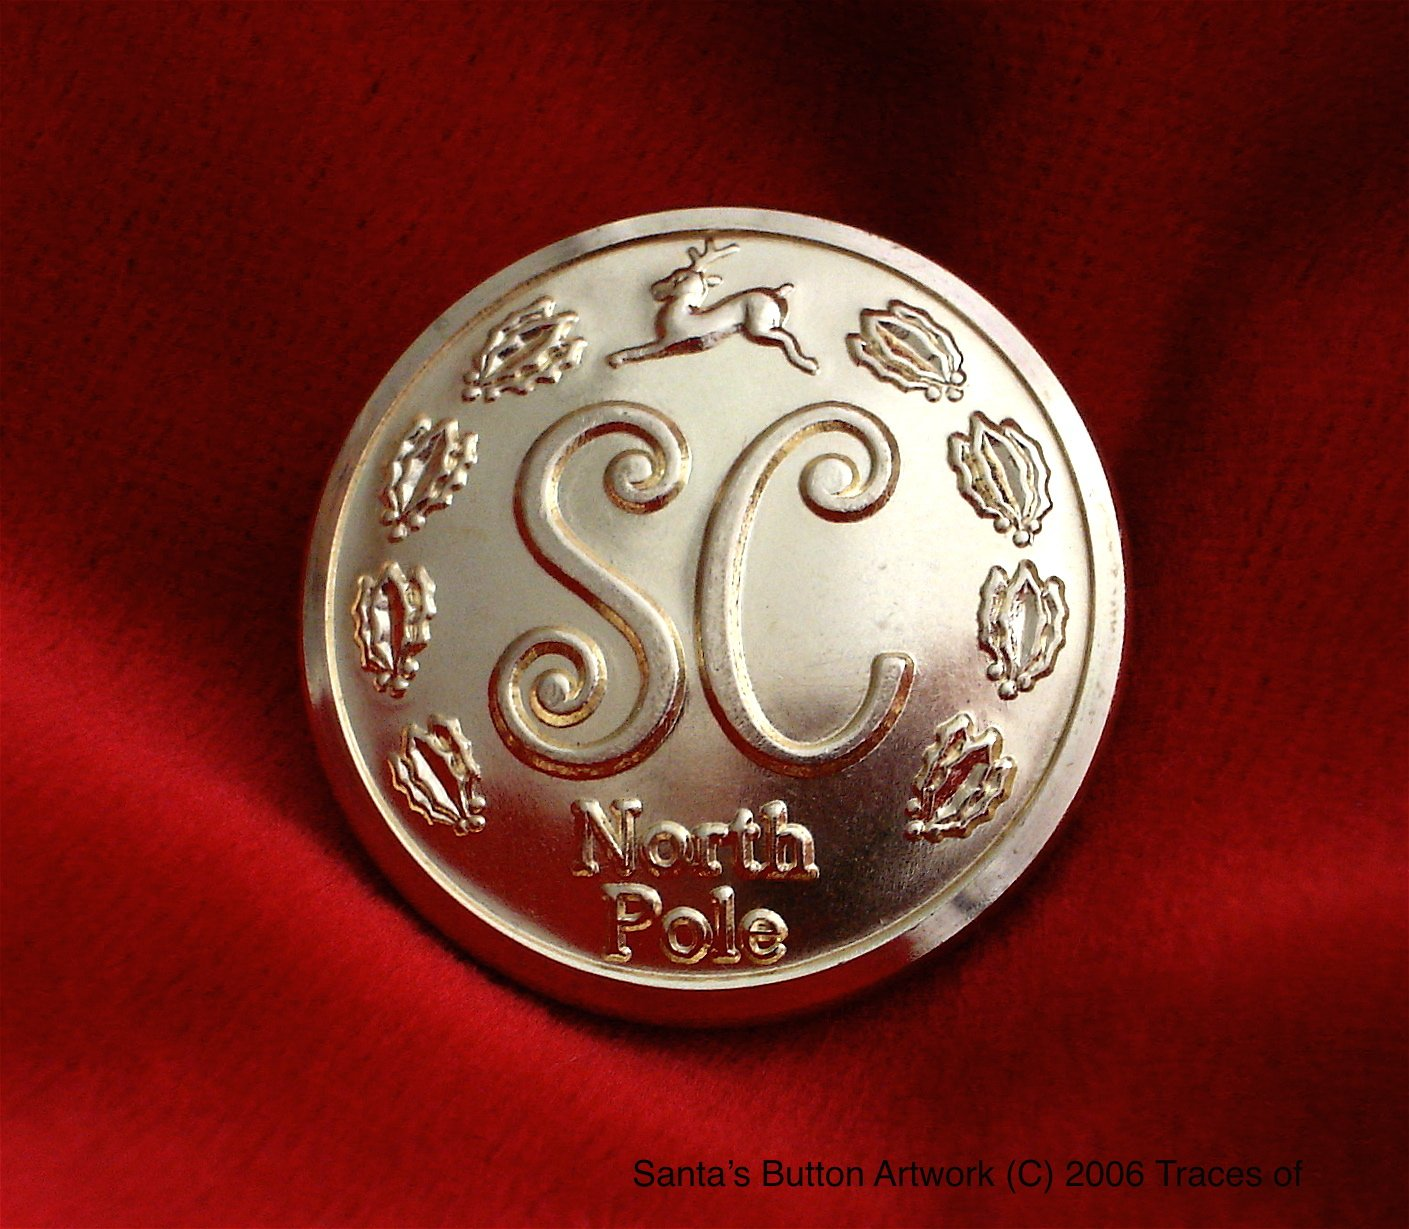 Santa's Button Traces of SB001